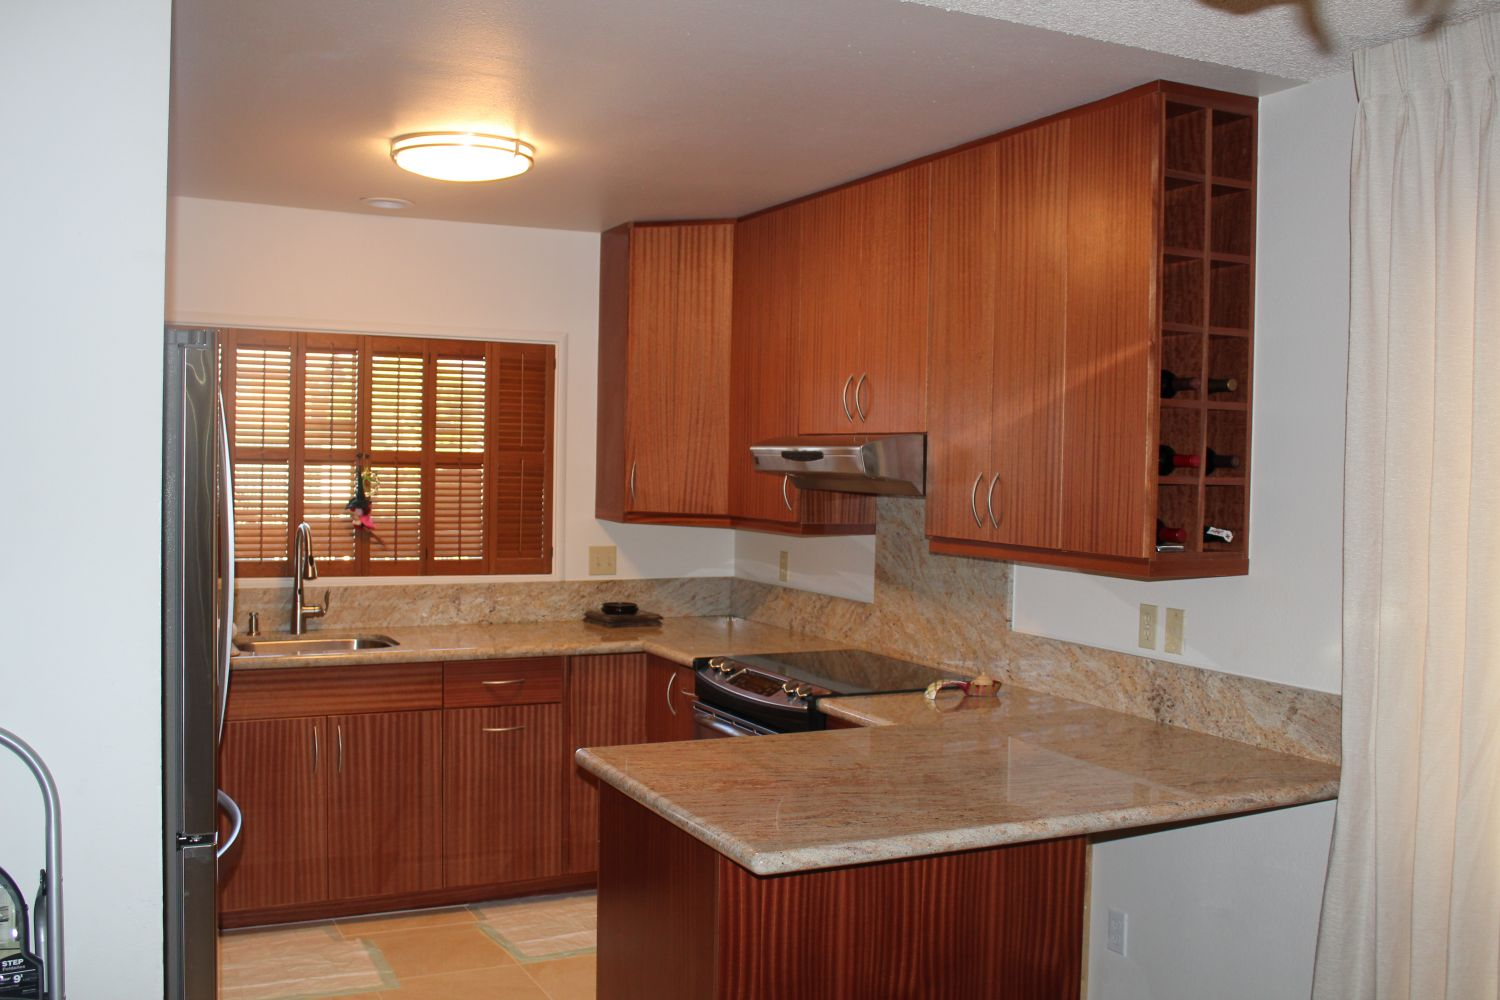 kitchen cabinets in Honolulu, HI.